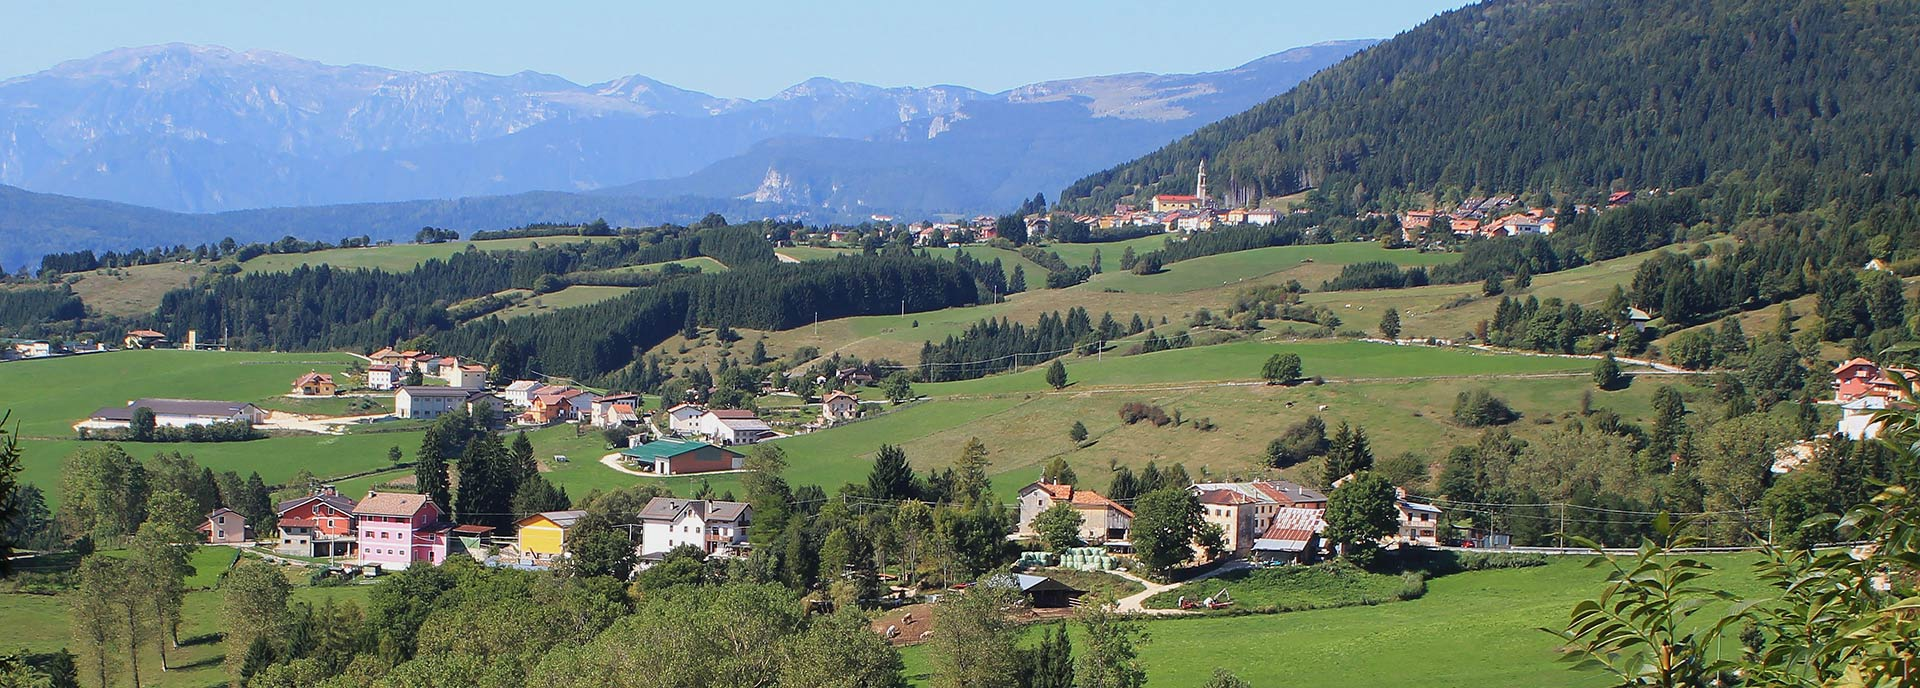 The panorama of Mezzaselva di Roana